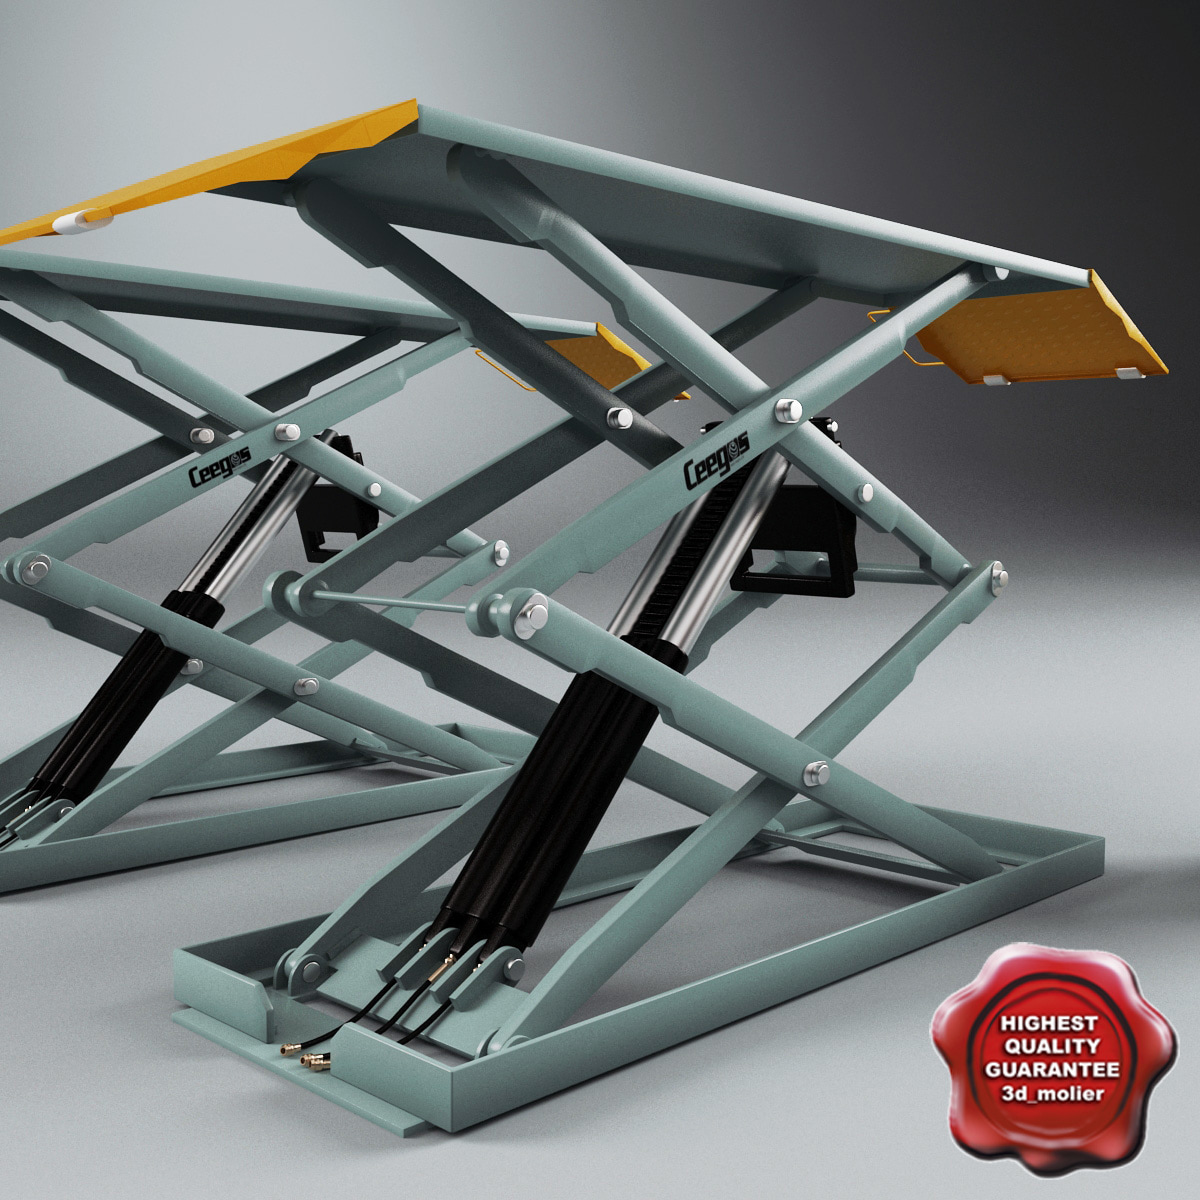 Small_Platform_Scissor_Lifts_00.jpg